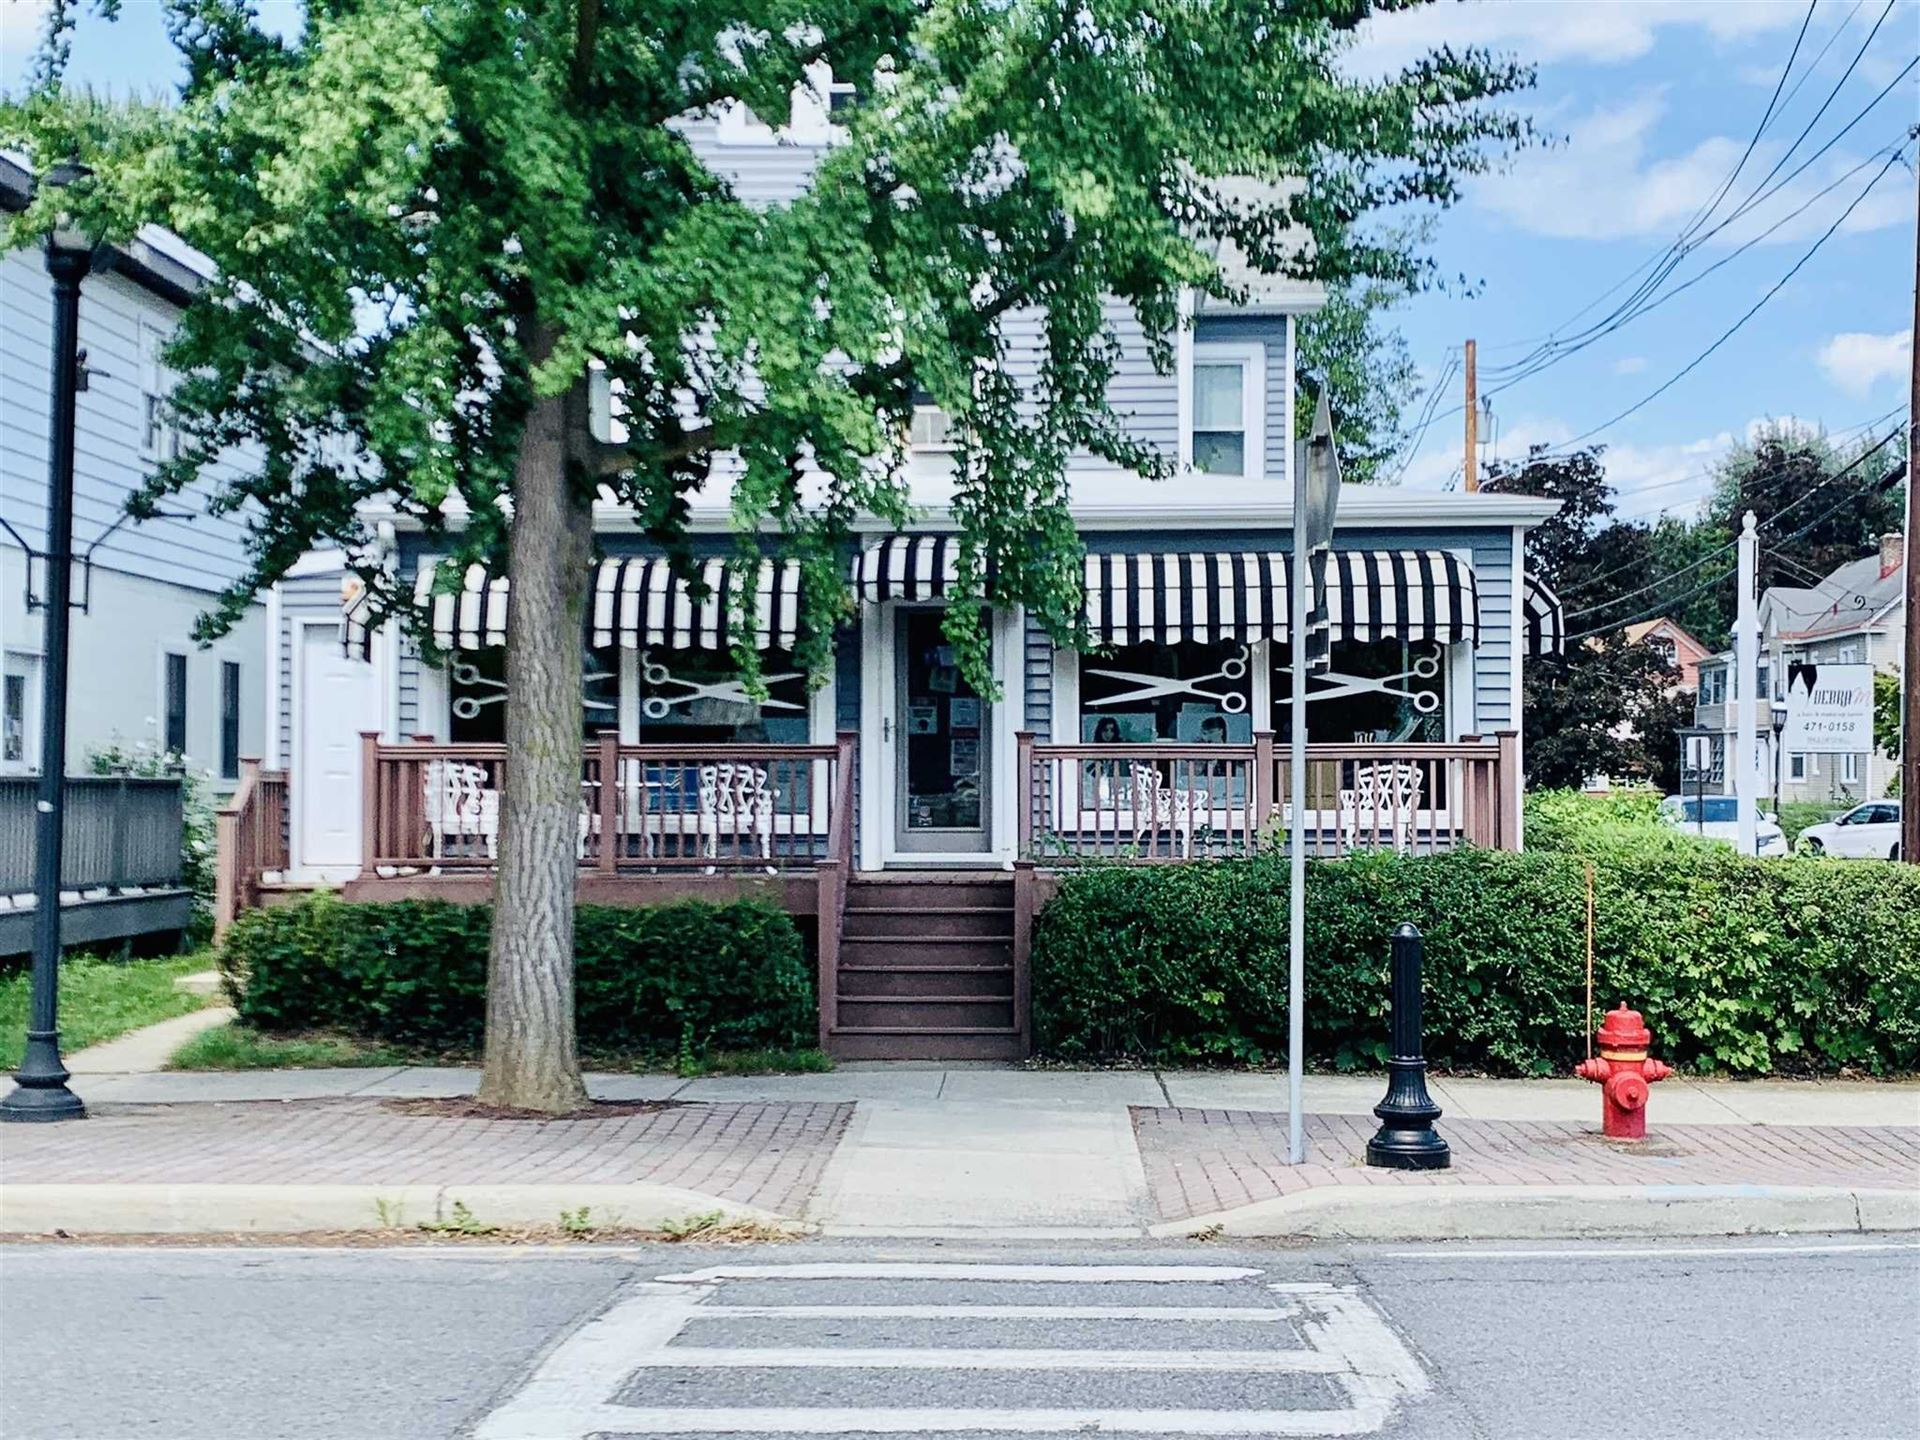 33 COLLEGEVIEW AVE, Poughkeepsie, NY 12603 - #: 398866